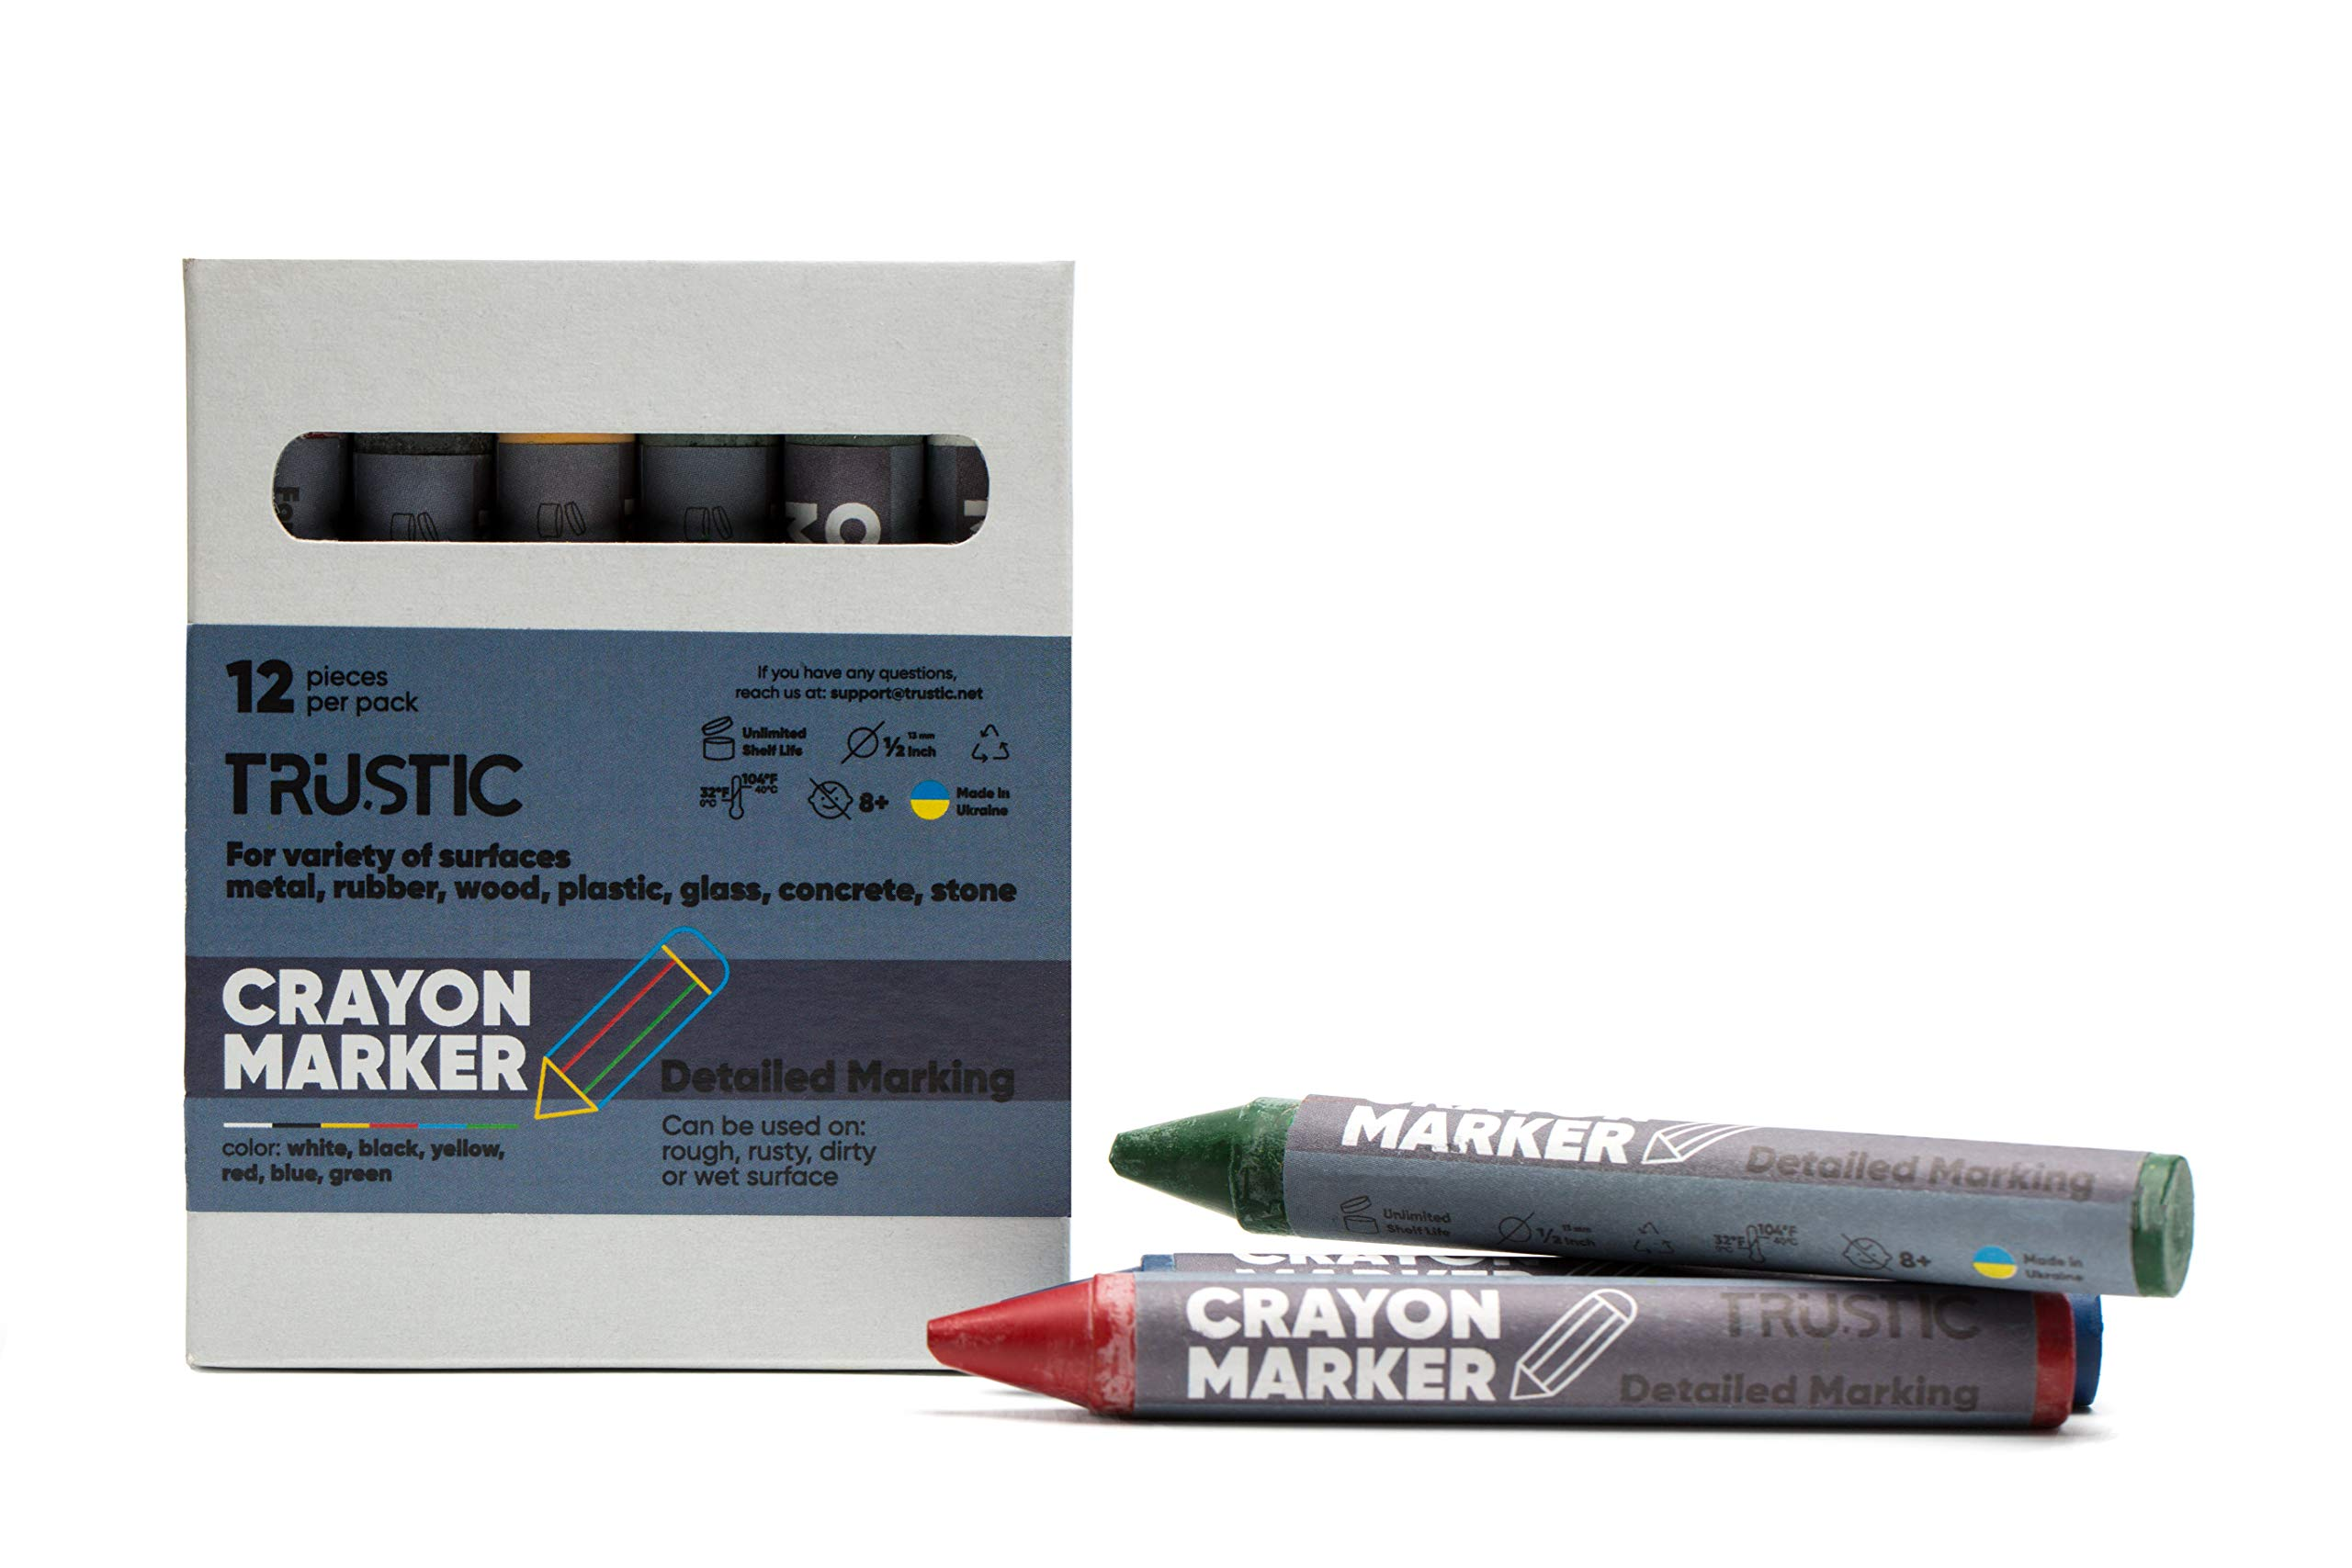 Trustic Crayon Wax Marker for Ambient Surface Detailed Marking on Wood Metal Carton Ceramics Concrete Glass Plastic Tire, Pack of 12 - Multicolor(2 each, White, Yellow, Black, Green, Red, Blue)